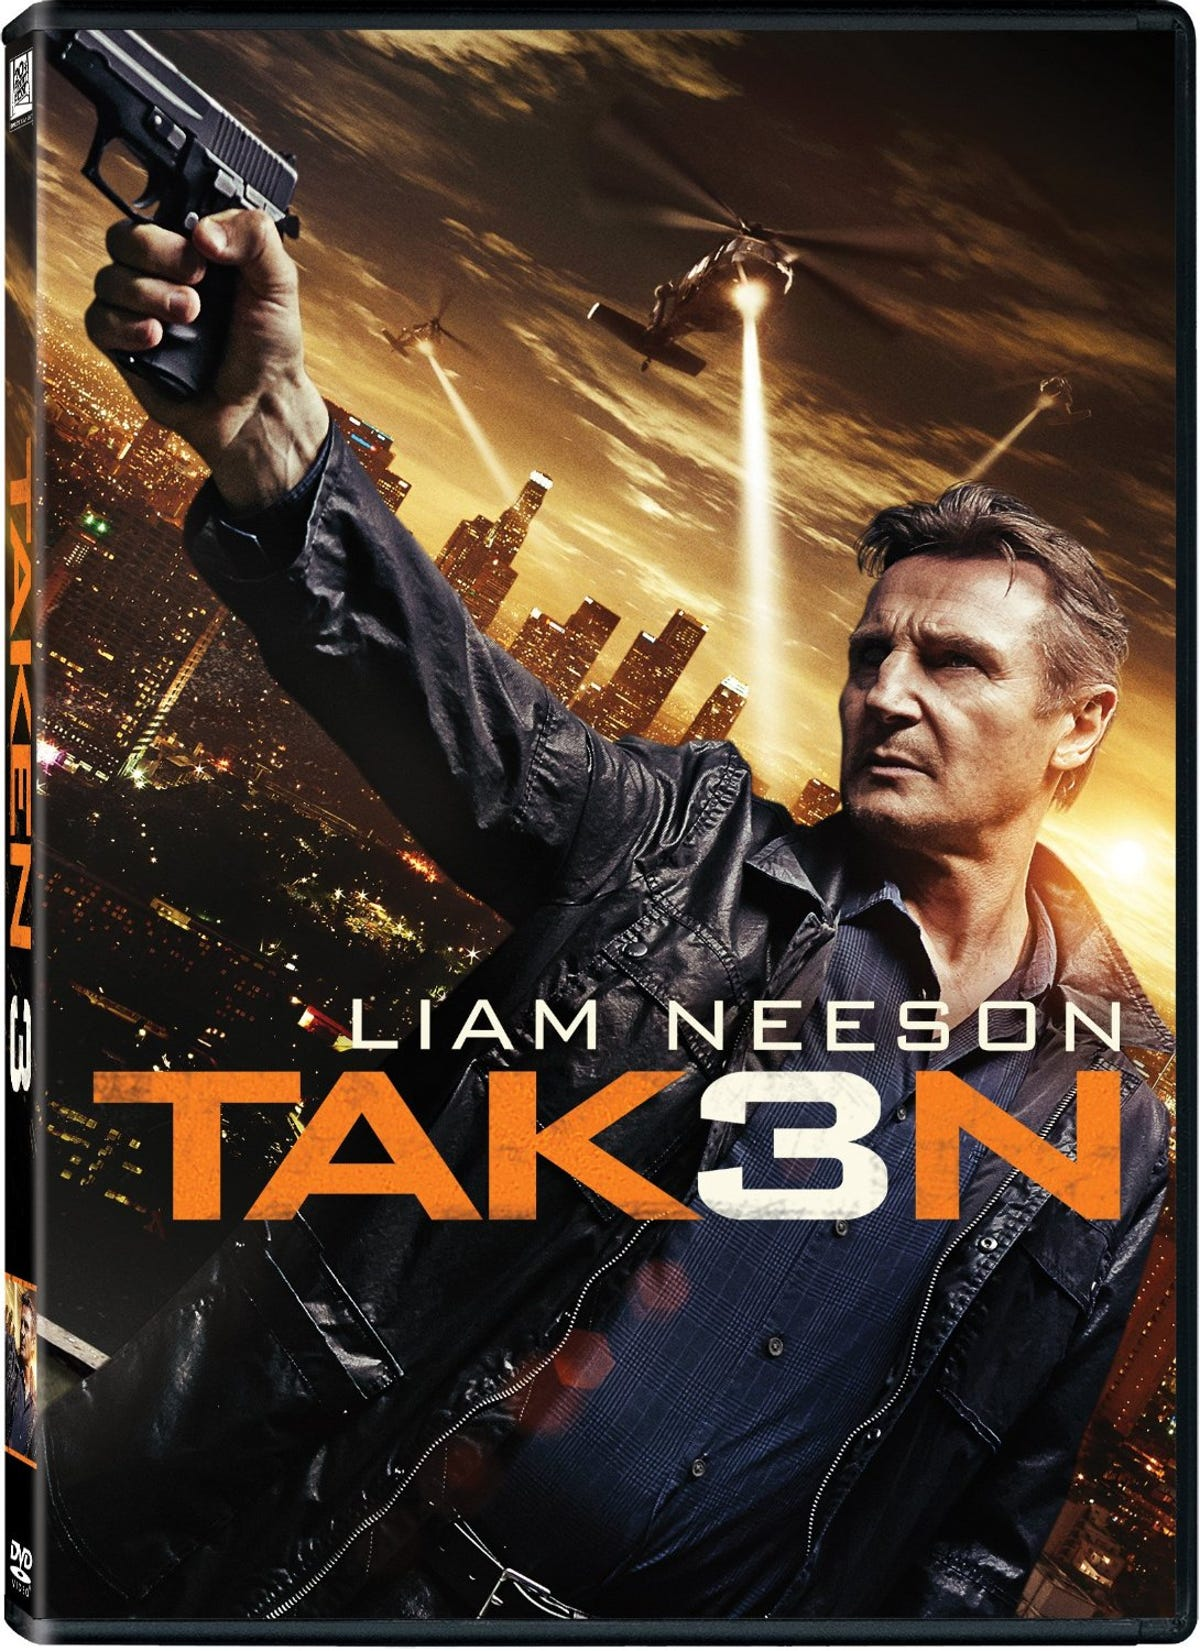 Taken 3' ends series on a low note